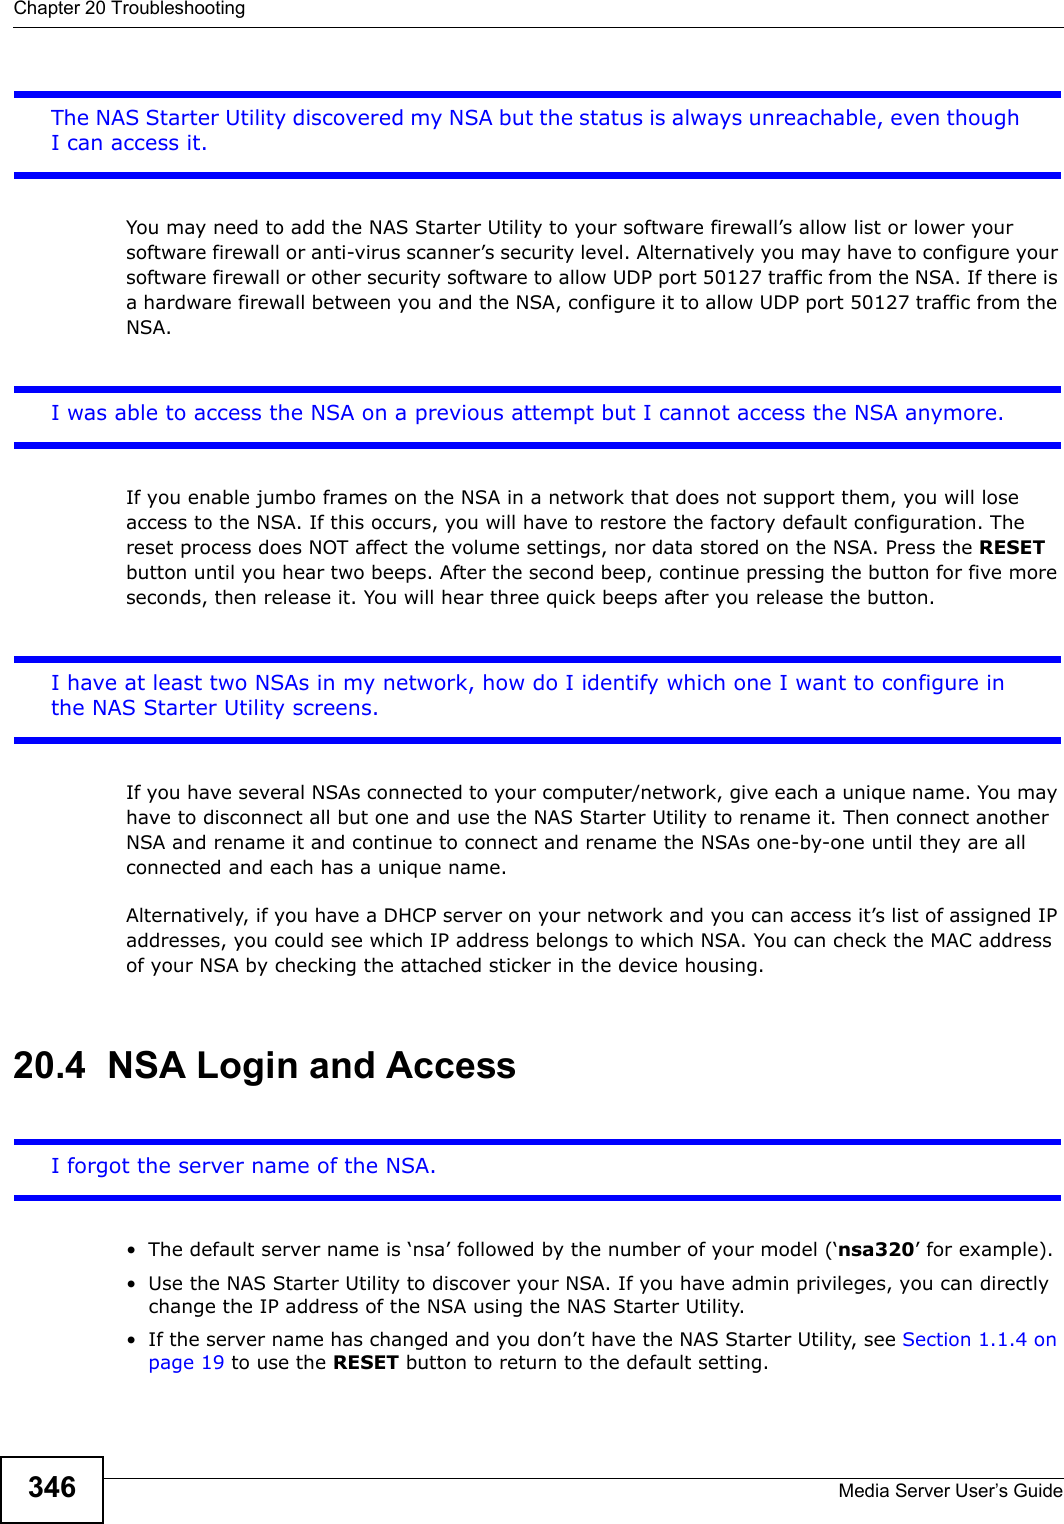 Zyxel Nsa320 Owners Manual